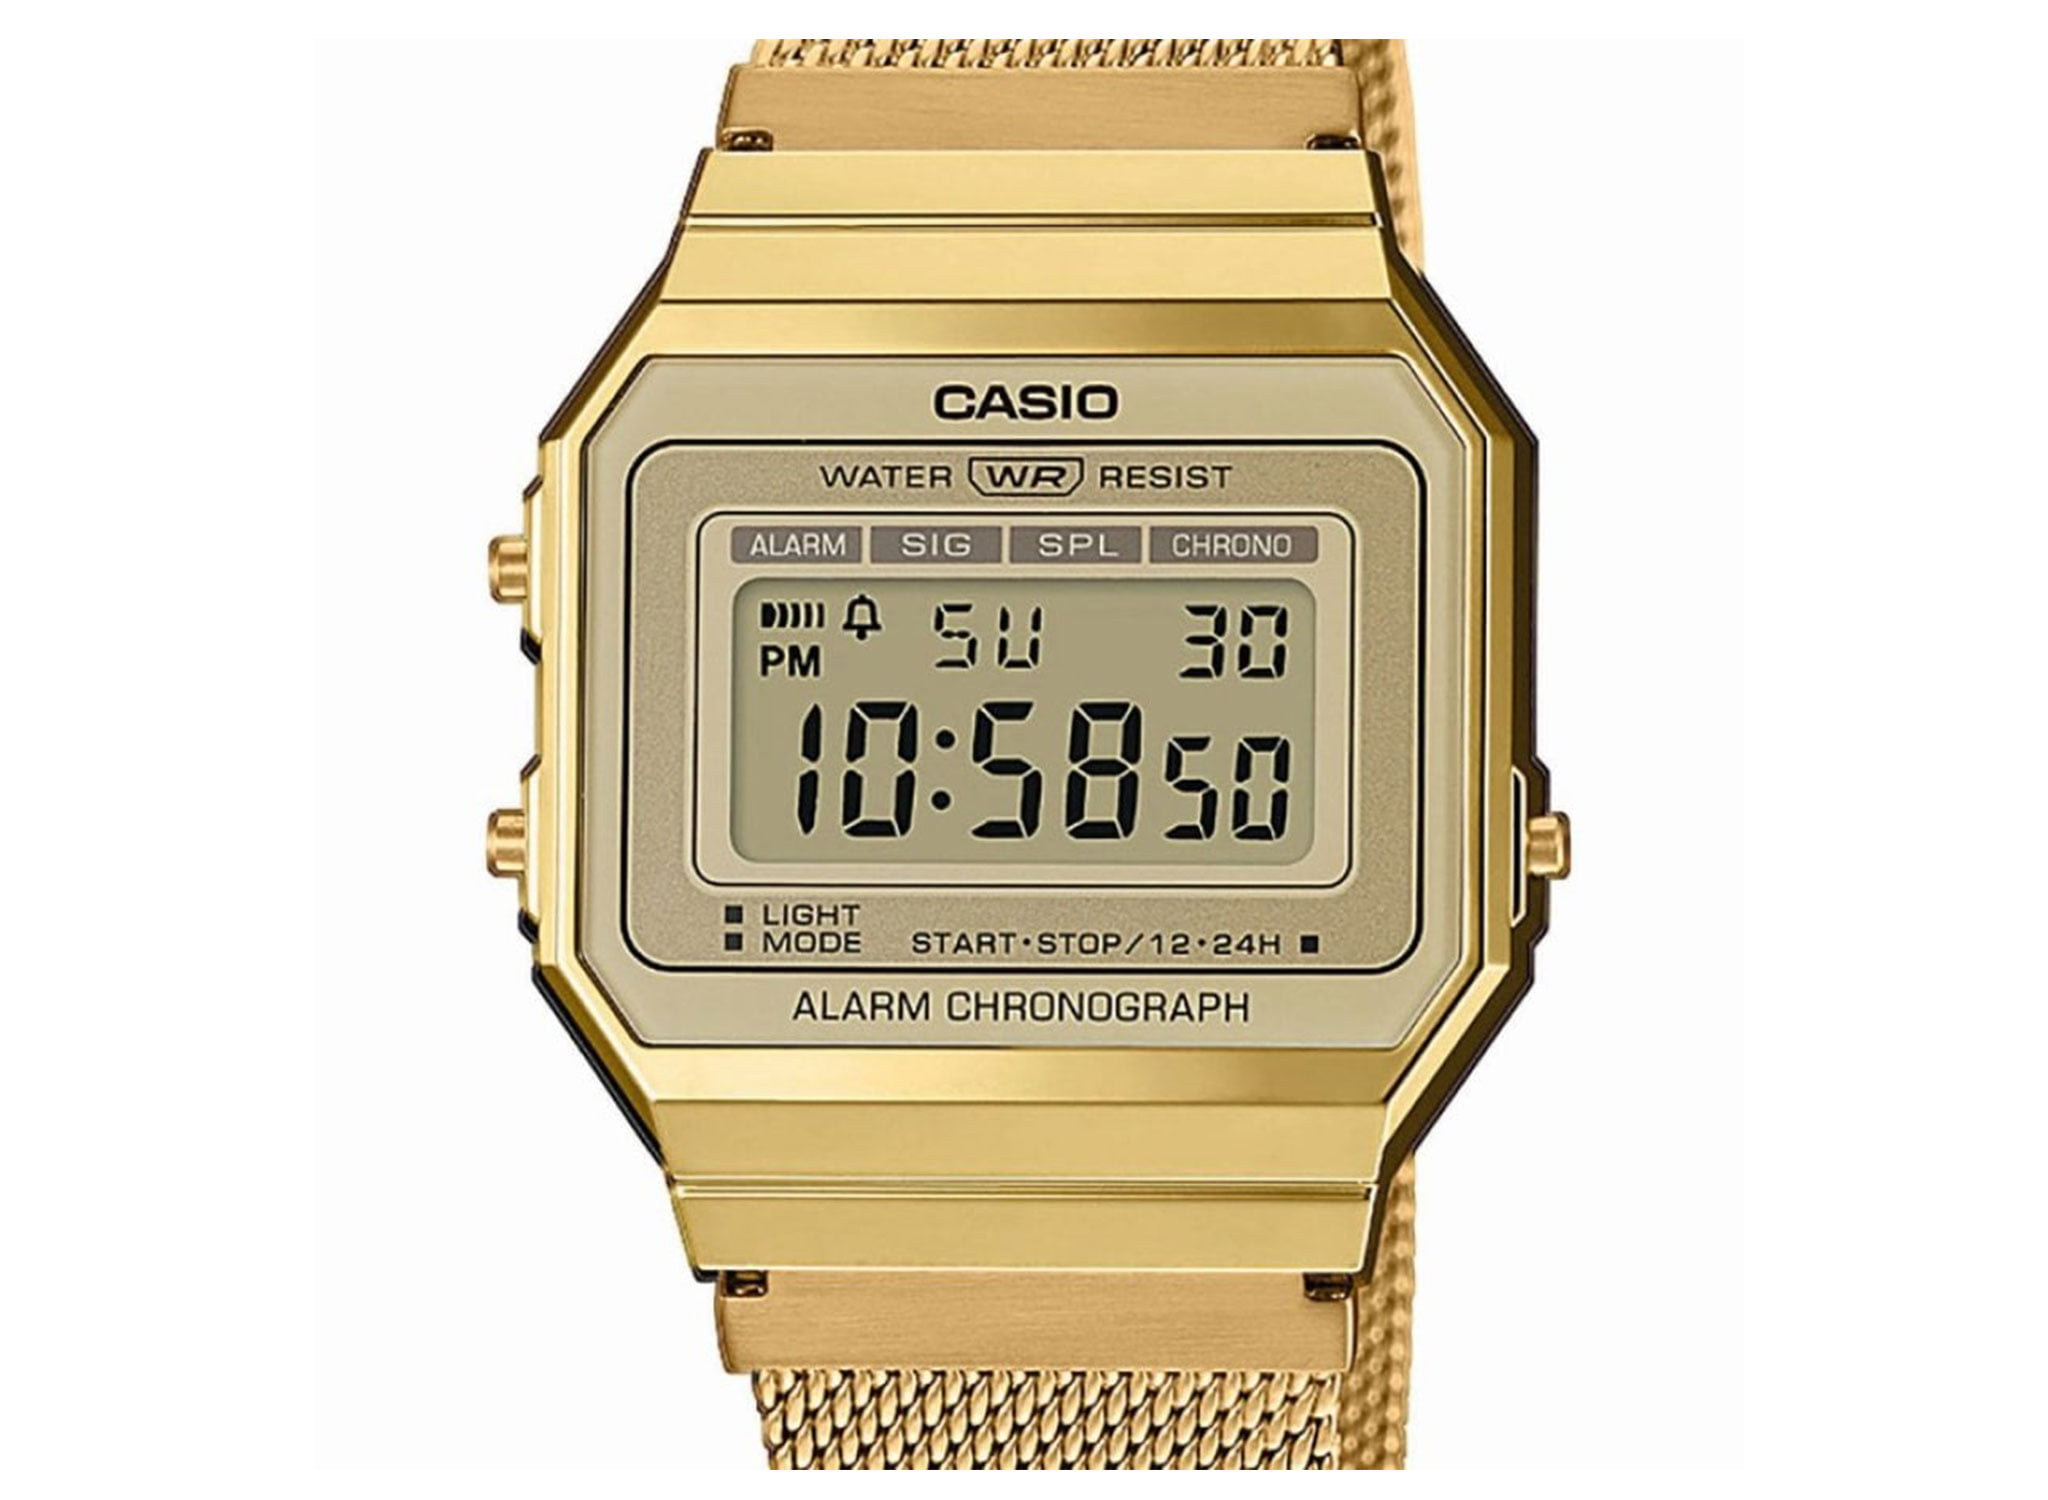 Golden Casio watch for women - Bonilla Jewelry